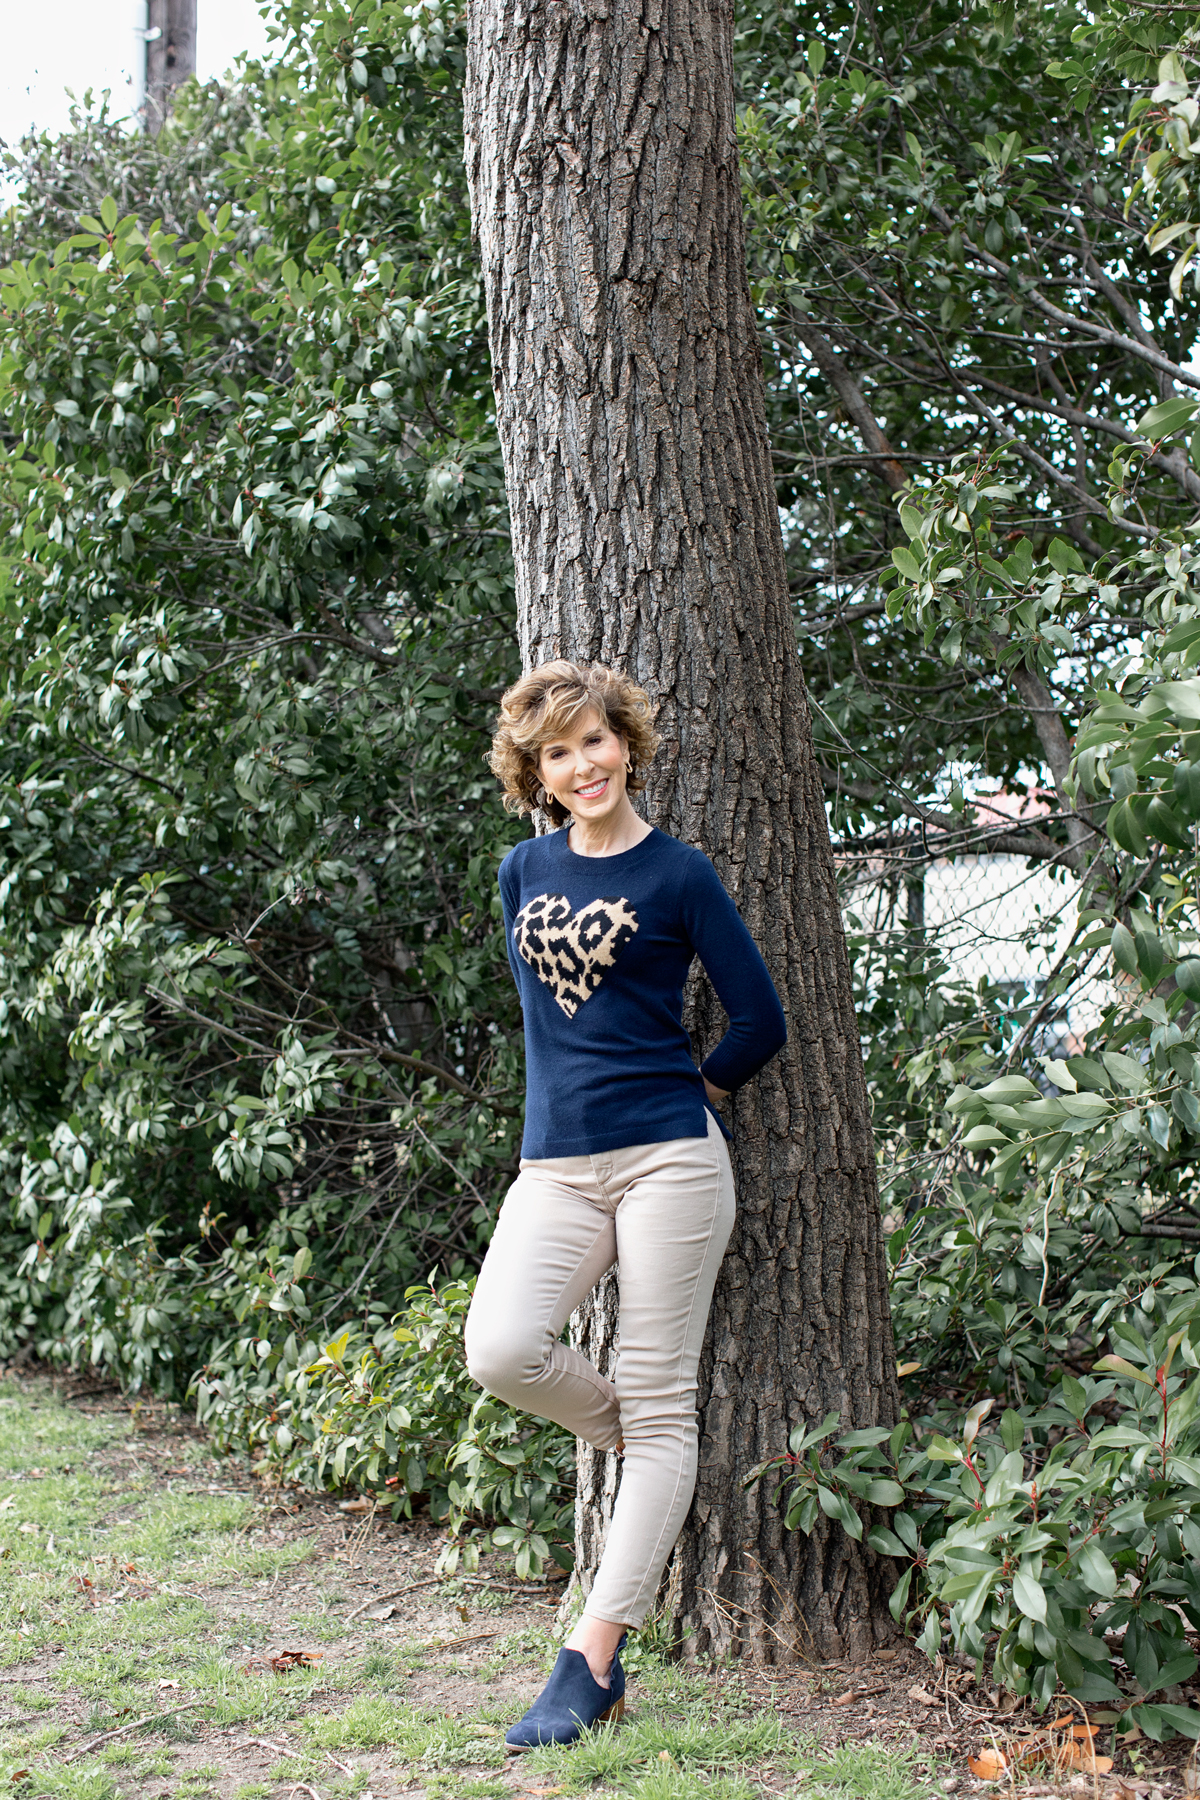 woman in heart sweater leaning against a tree